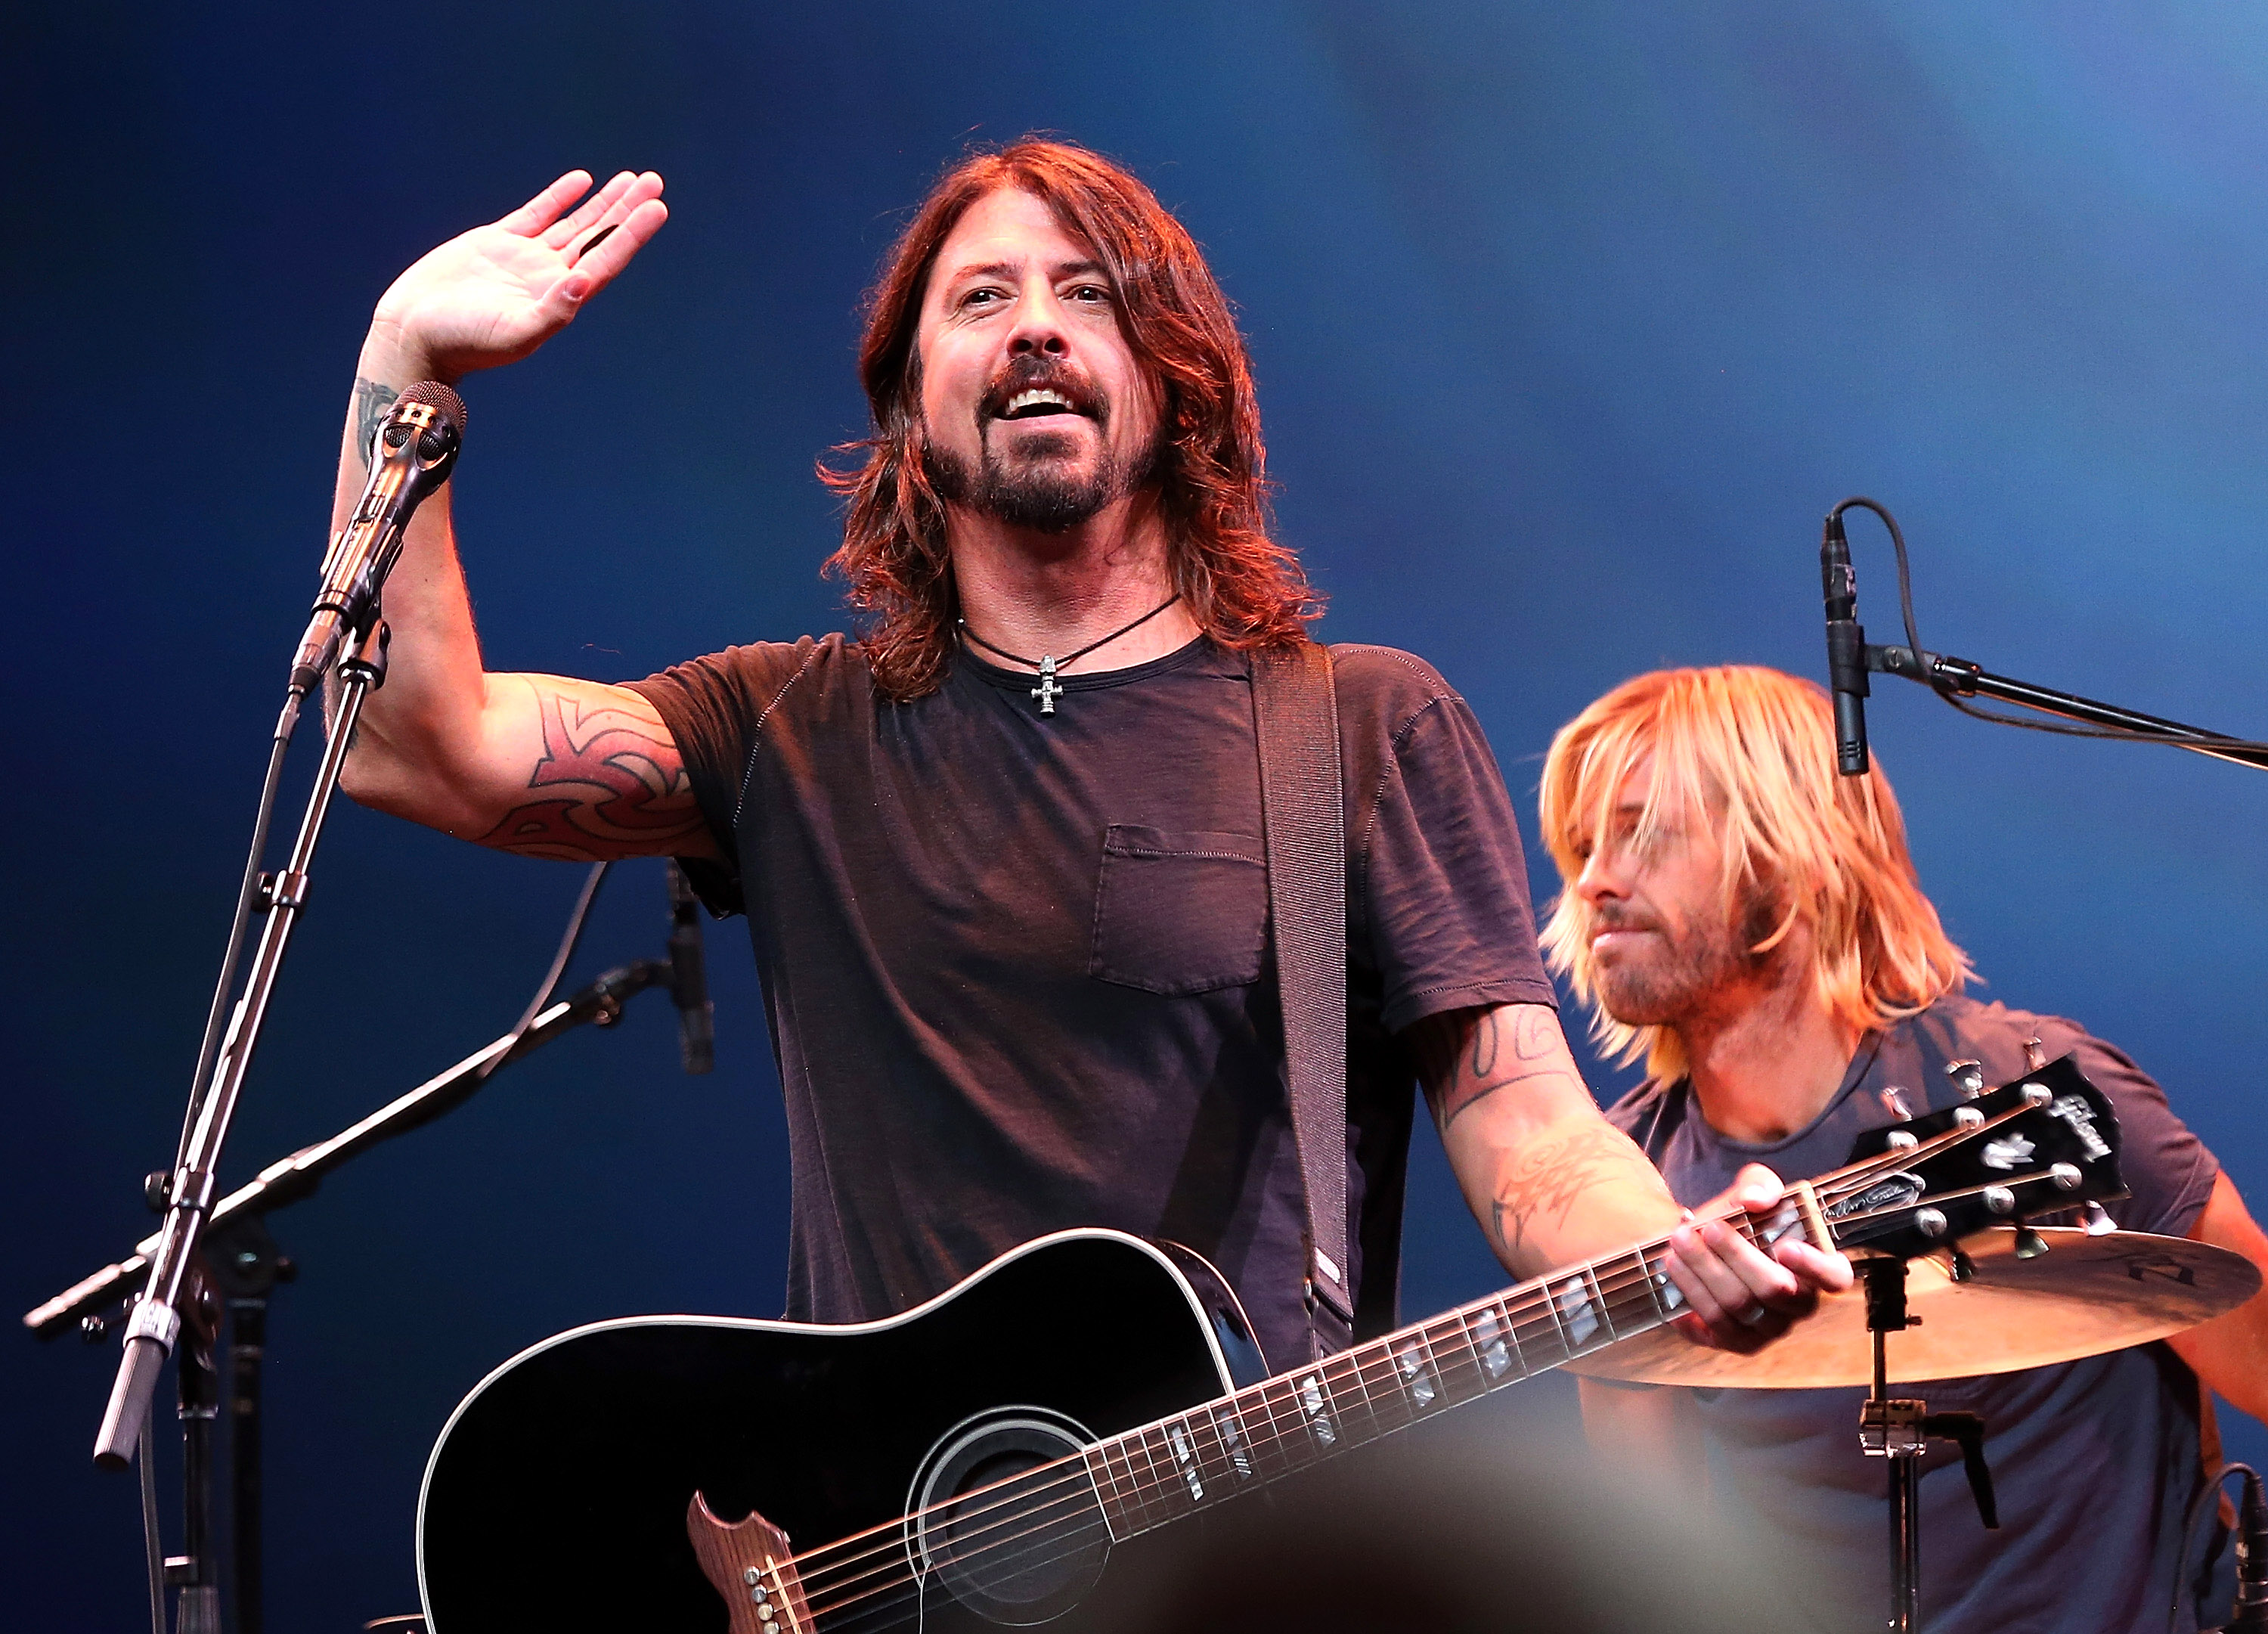 Cousins Subs to deliver free food to Foo Fighters fans in Milwaukee